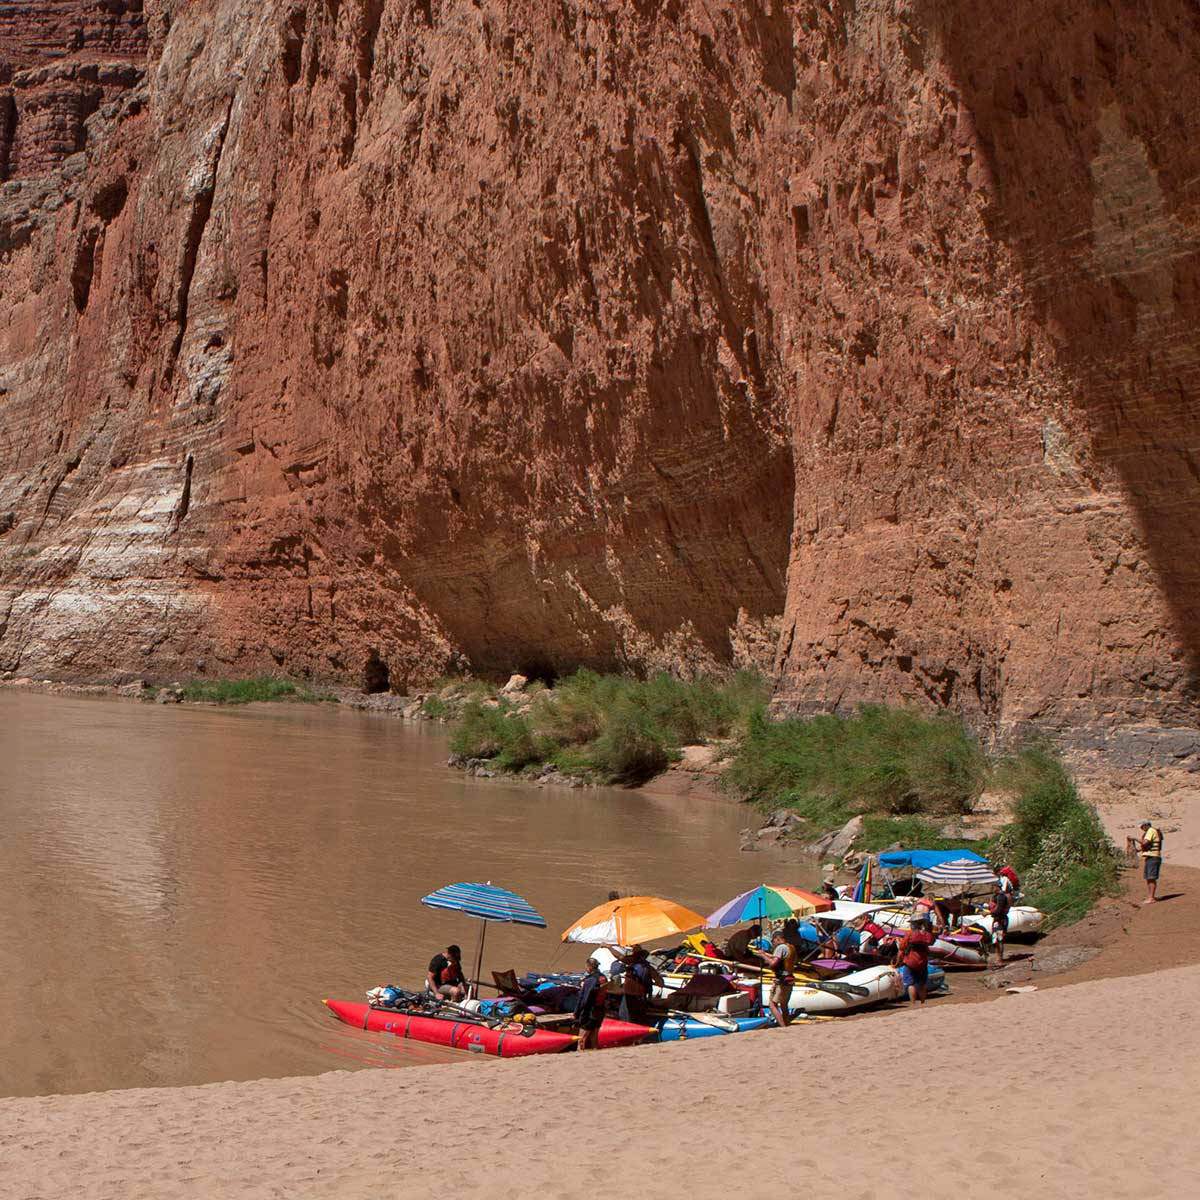 A group of rafters beneath colorful umbrellas rest at the shore next to a large cliff.